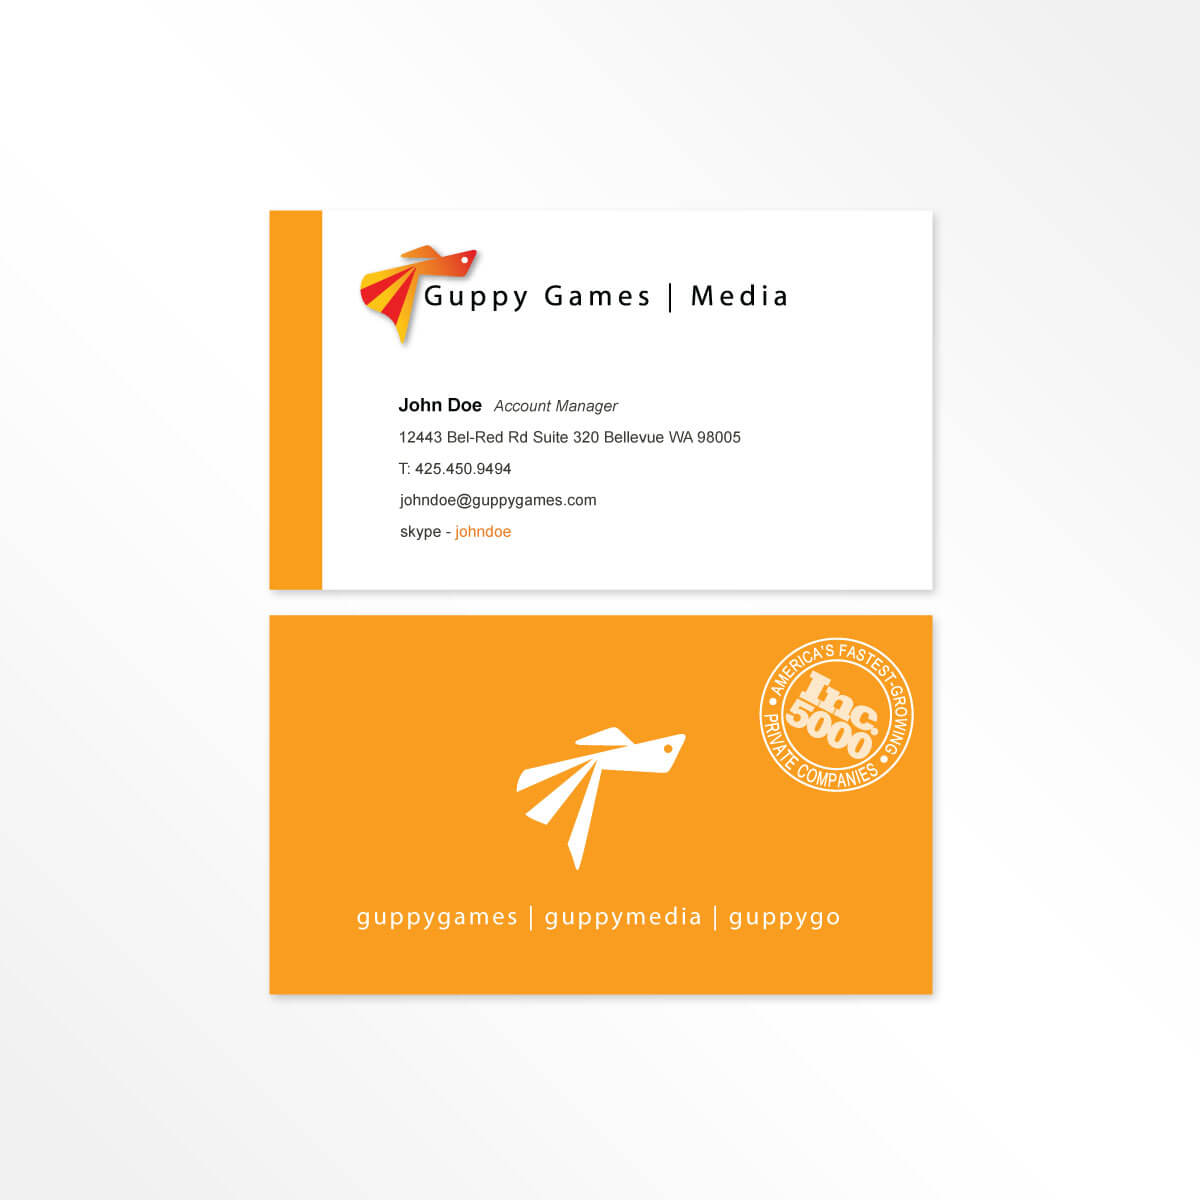 Previous Guppy Media business card